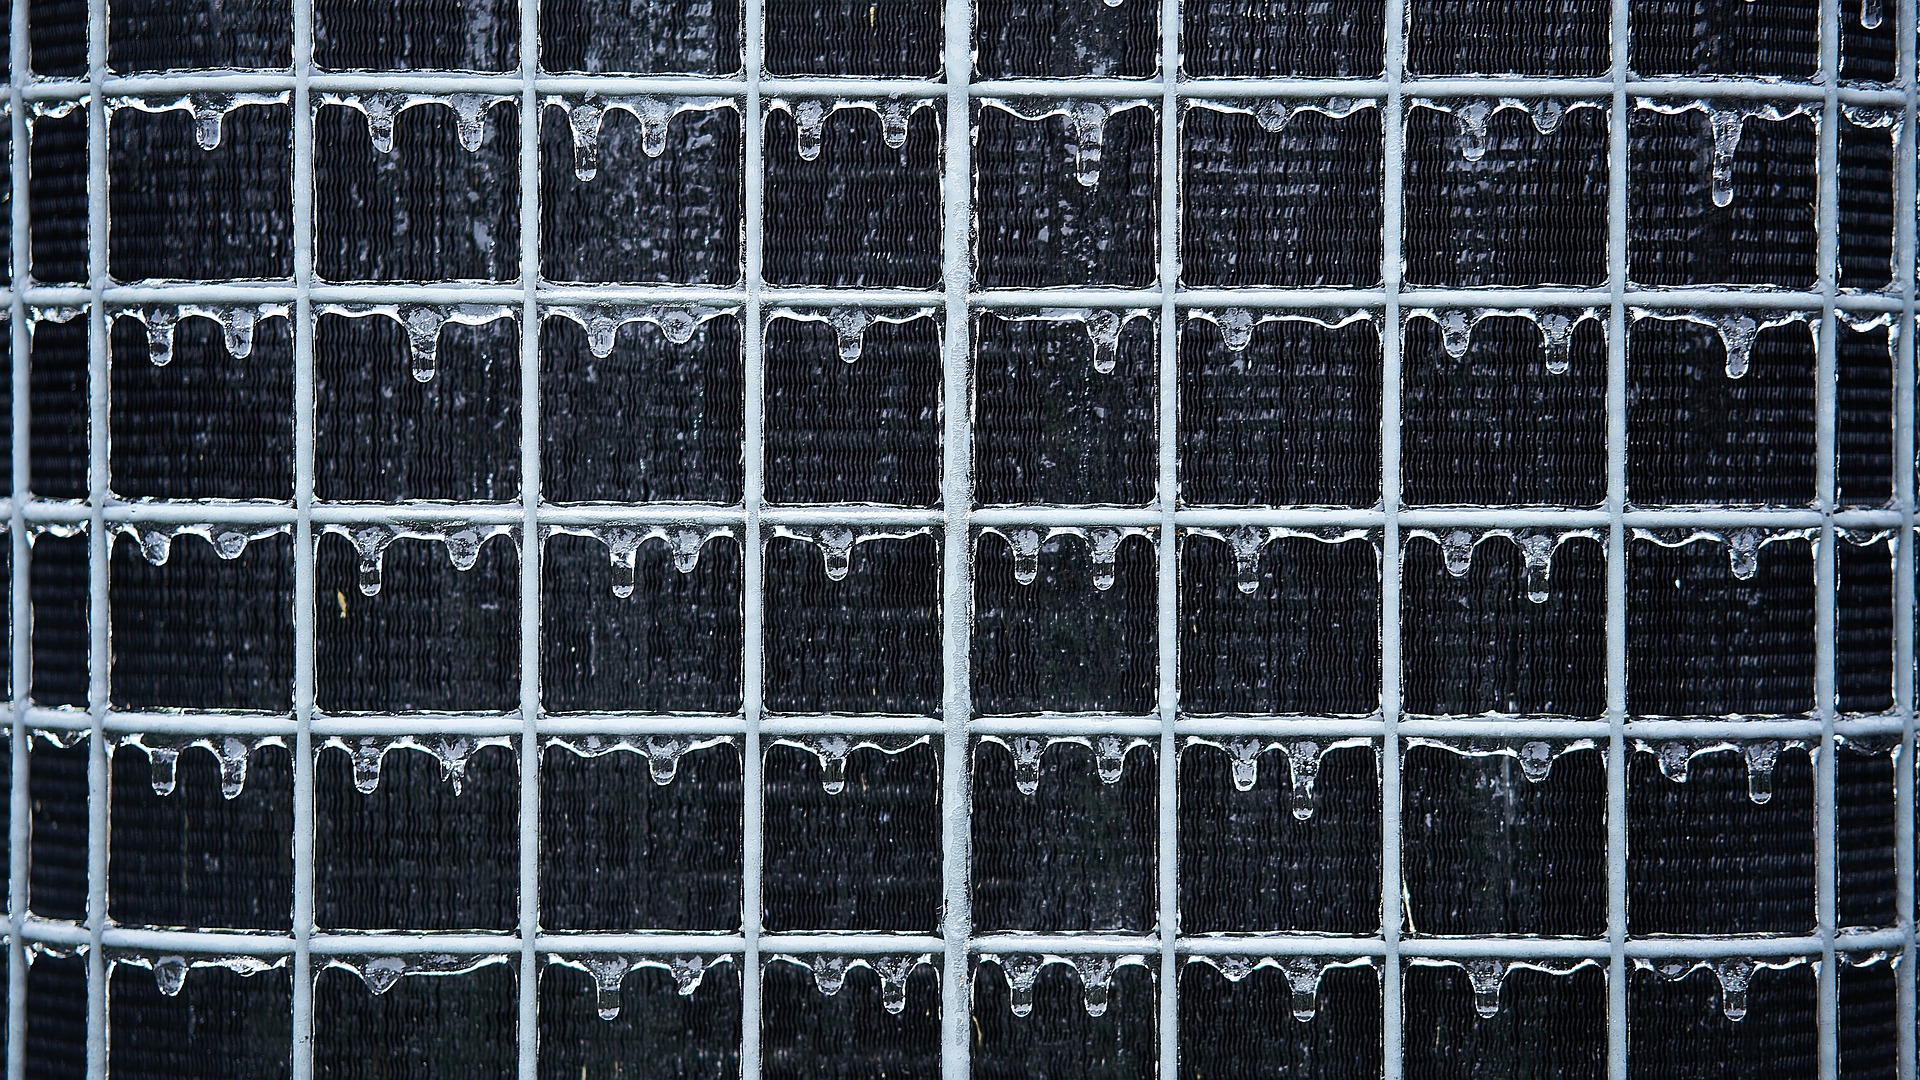 Close up of a metal grid with a black backdrop. Frozen water droplets hand on the edge of each metal rung.